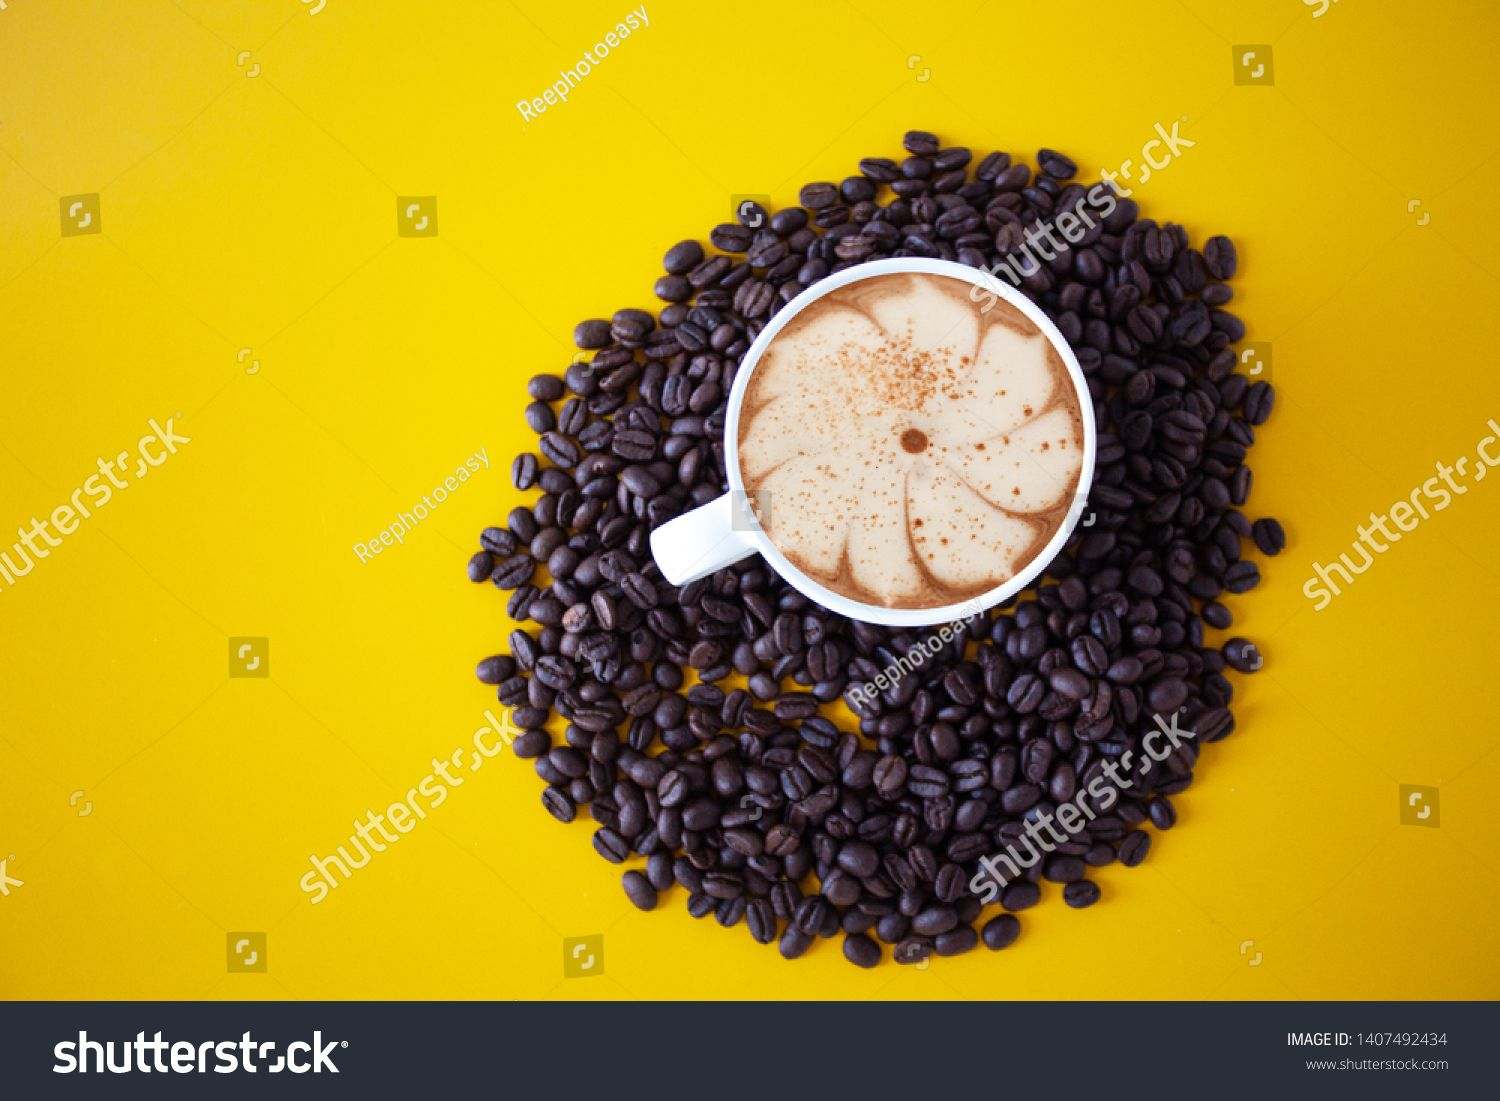 Roasted Coffee Beans Placed On An Old Yellow Wooden Floor Top View Coffee Cup For Background Concept Ingredie In 2020 Roasted Coffee Beans Coffee Beans Breakfast Drink